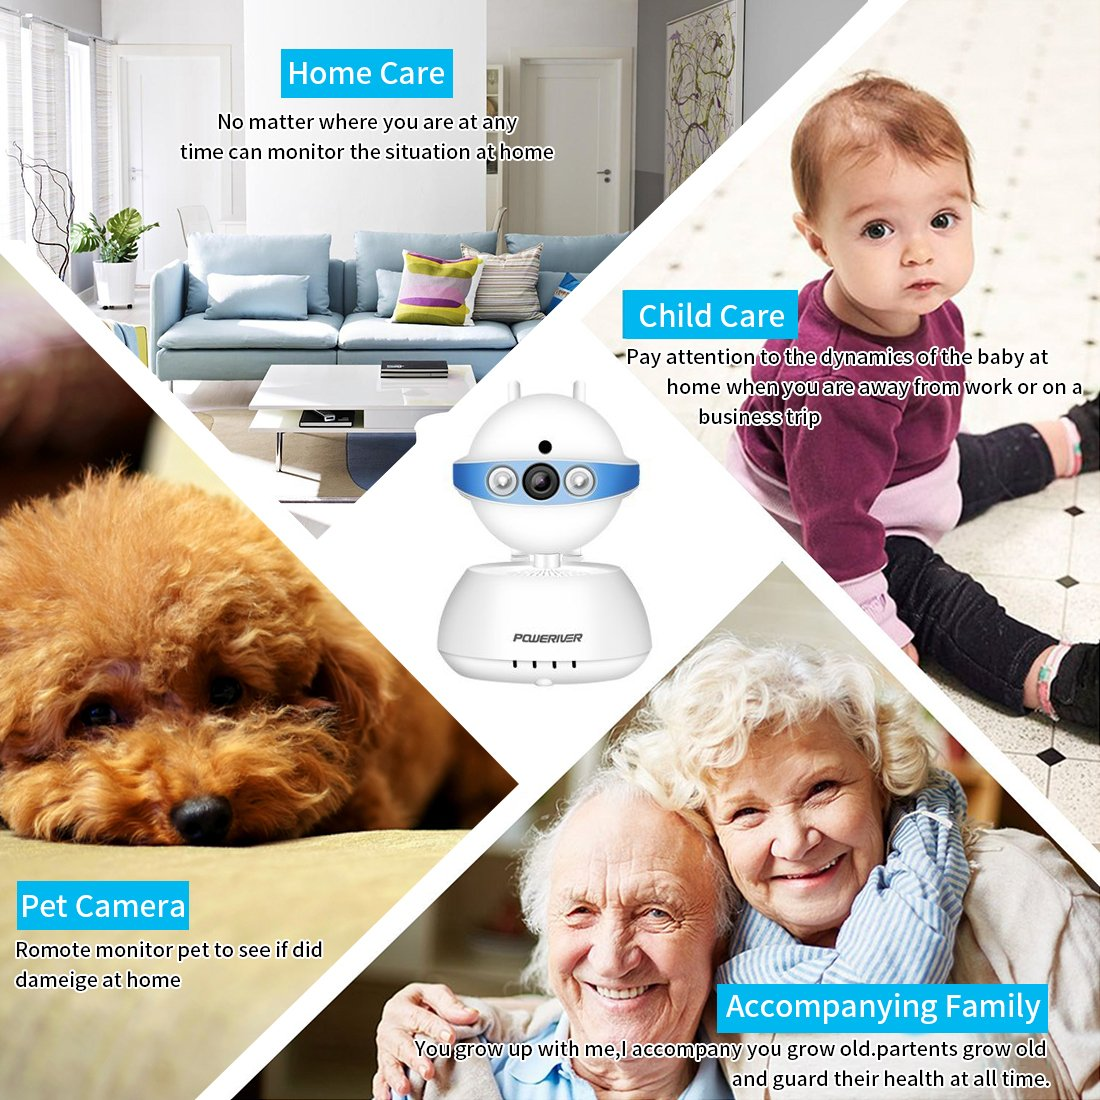 Security Camera,POWERIVER WiFi Ip Indoor Security System with Motion Detection, Two-Way Audio & Night Vision for Baby/Pet/Front Porch Monitor, Remote Control with iOS, Android, PC App(Blue)